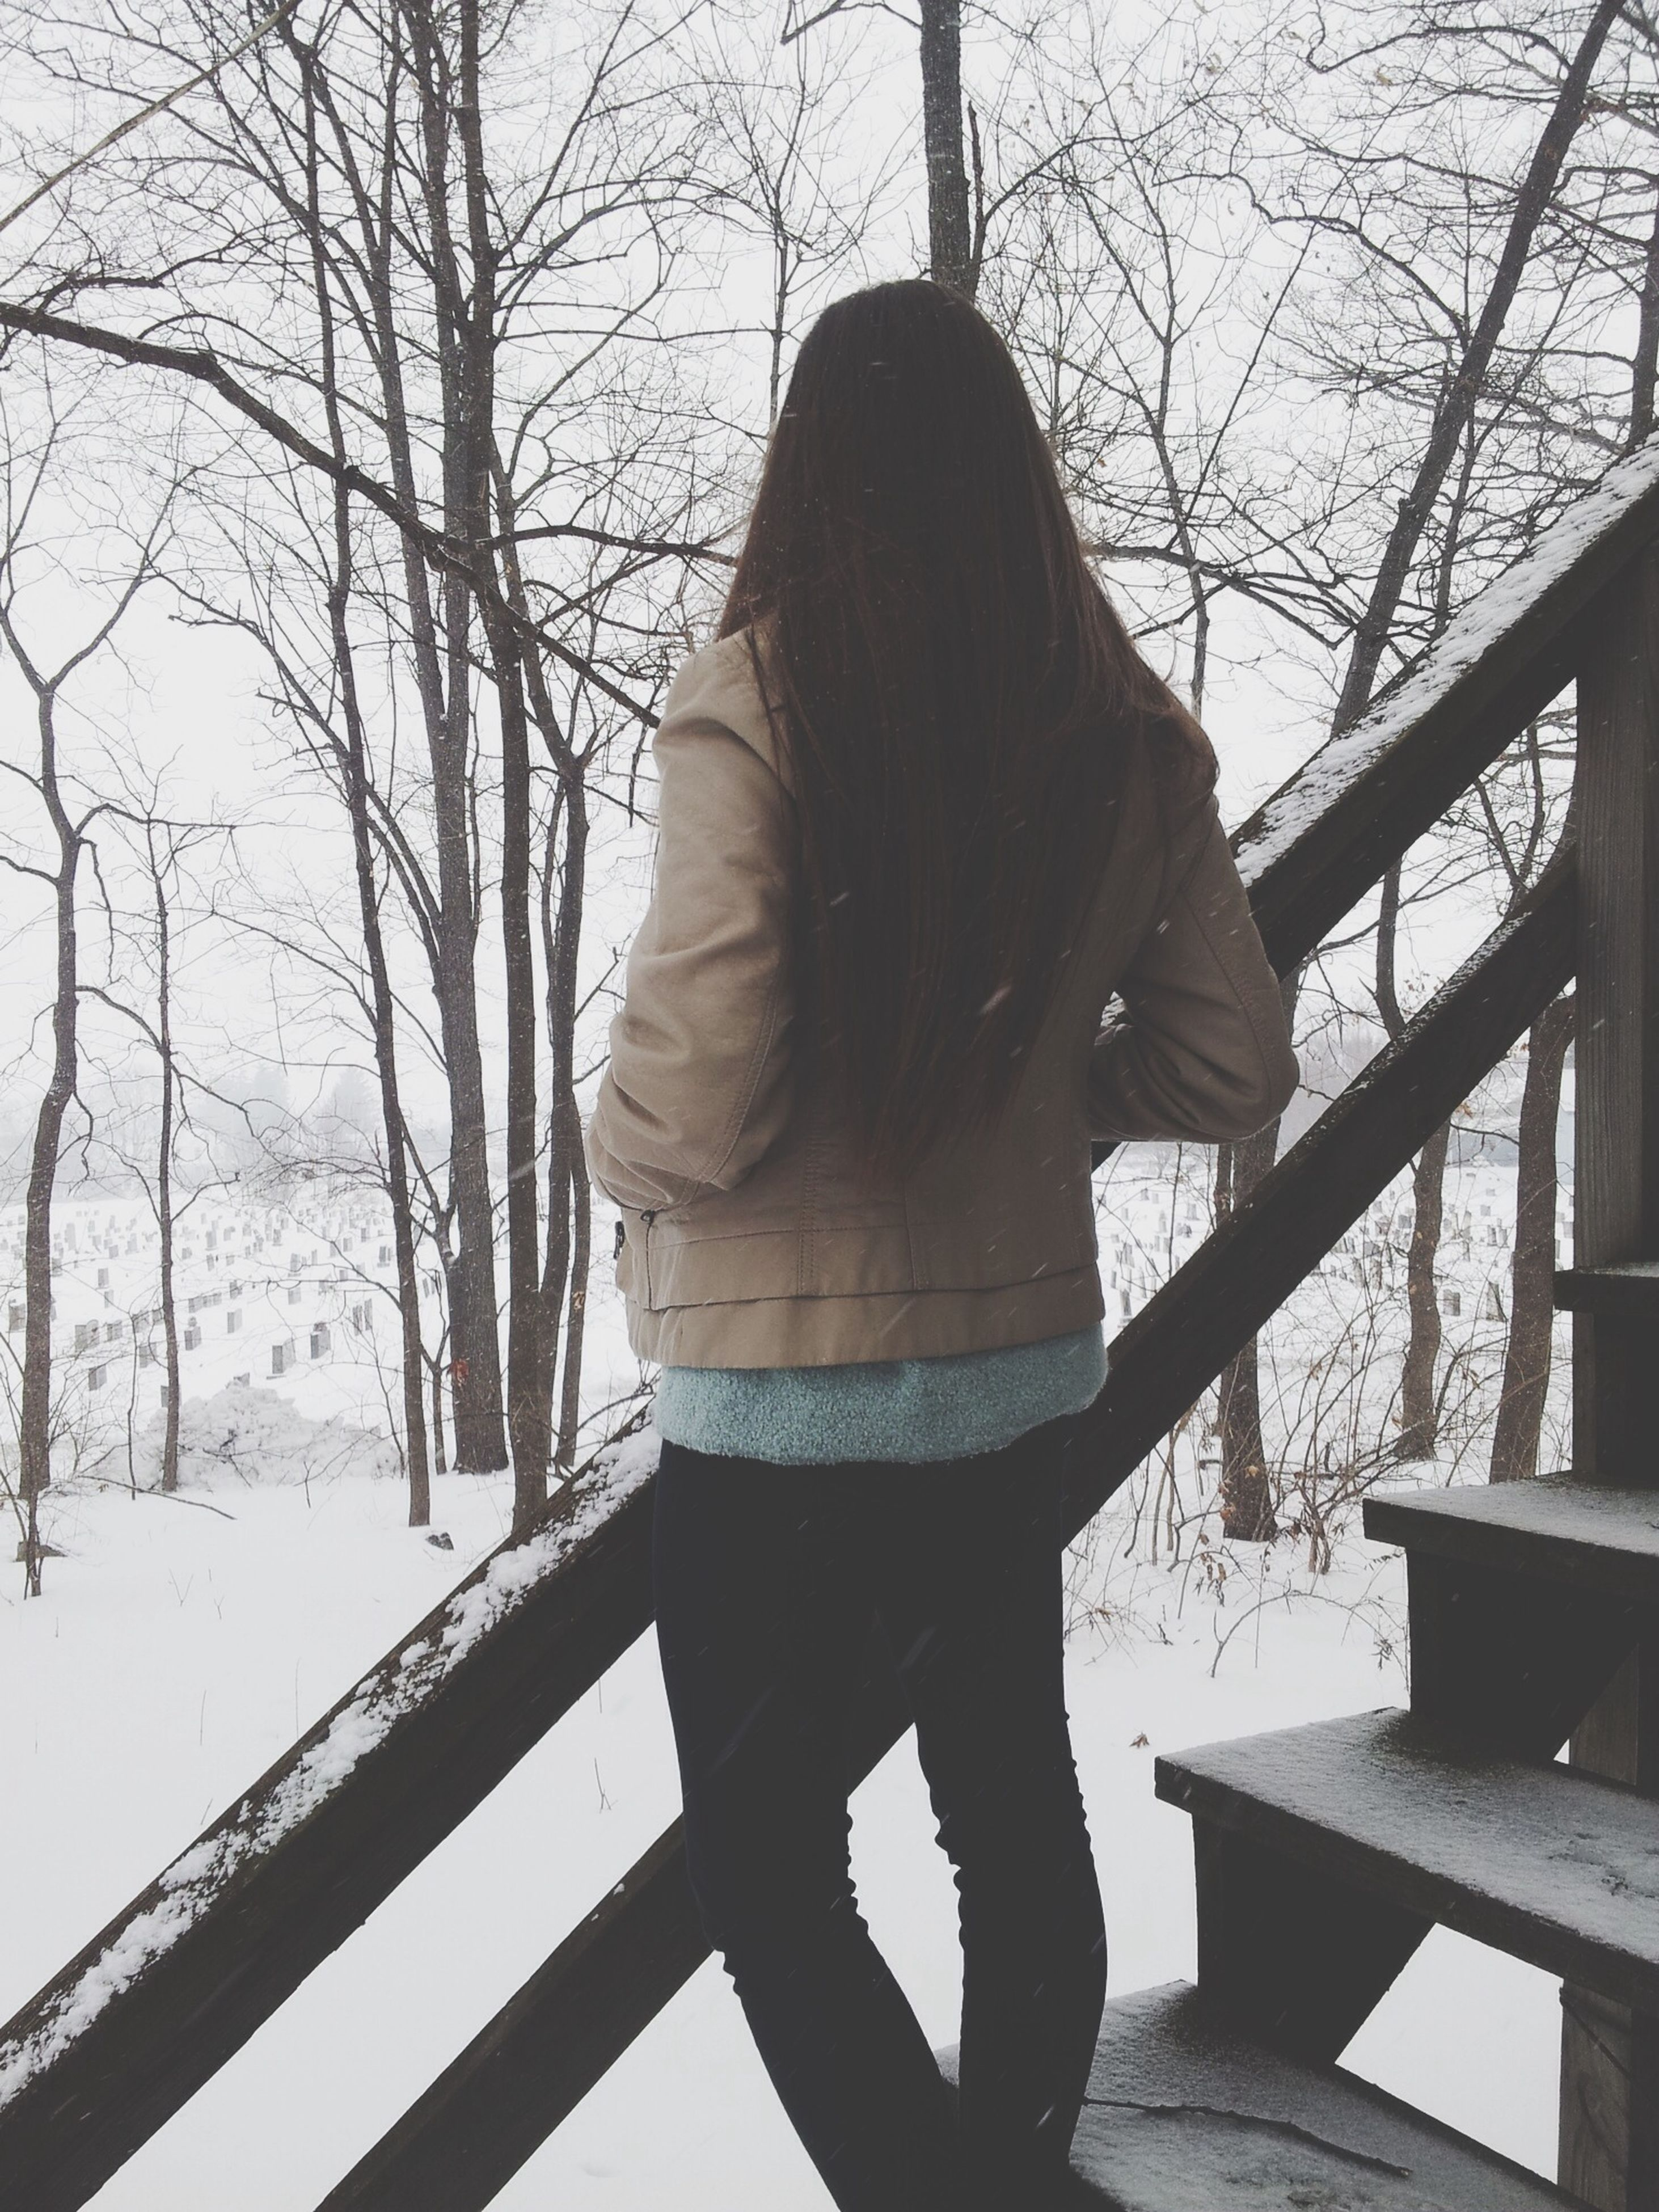 rear view, full length, lifestyles, standing, winter, tree, leisure activity, snow, railing, casual clothing, cold temperature, warm clothing, season, person, three quarter length, day, bare tree, walking